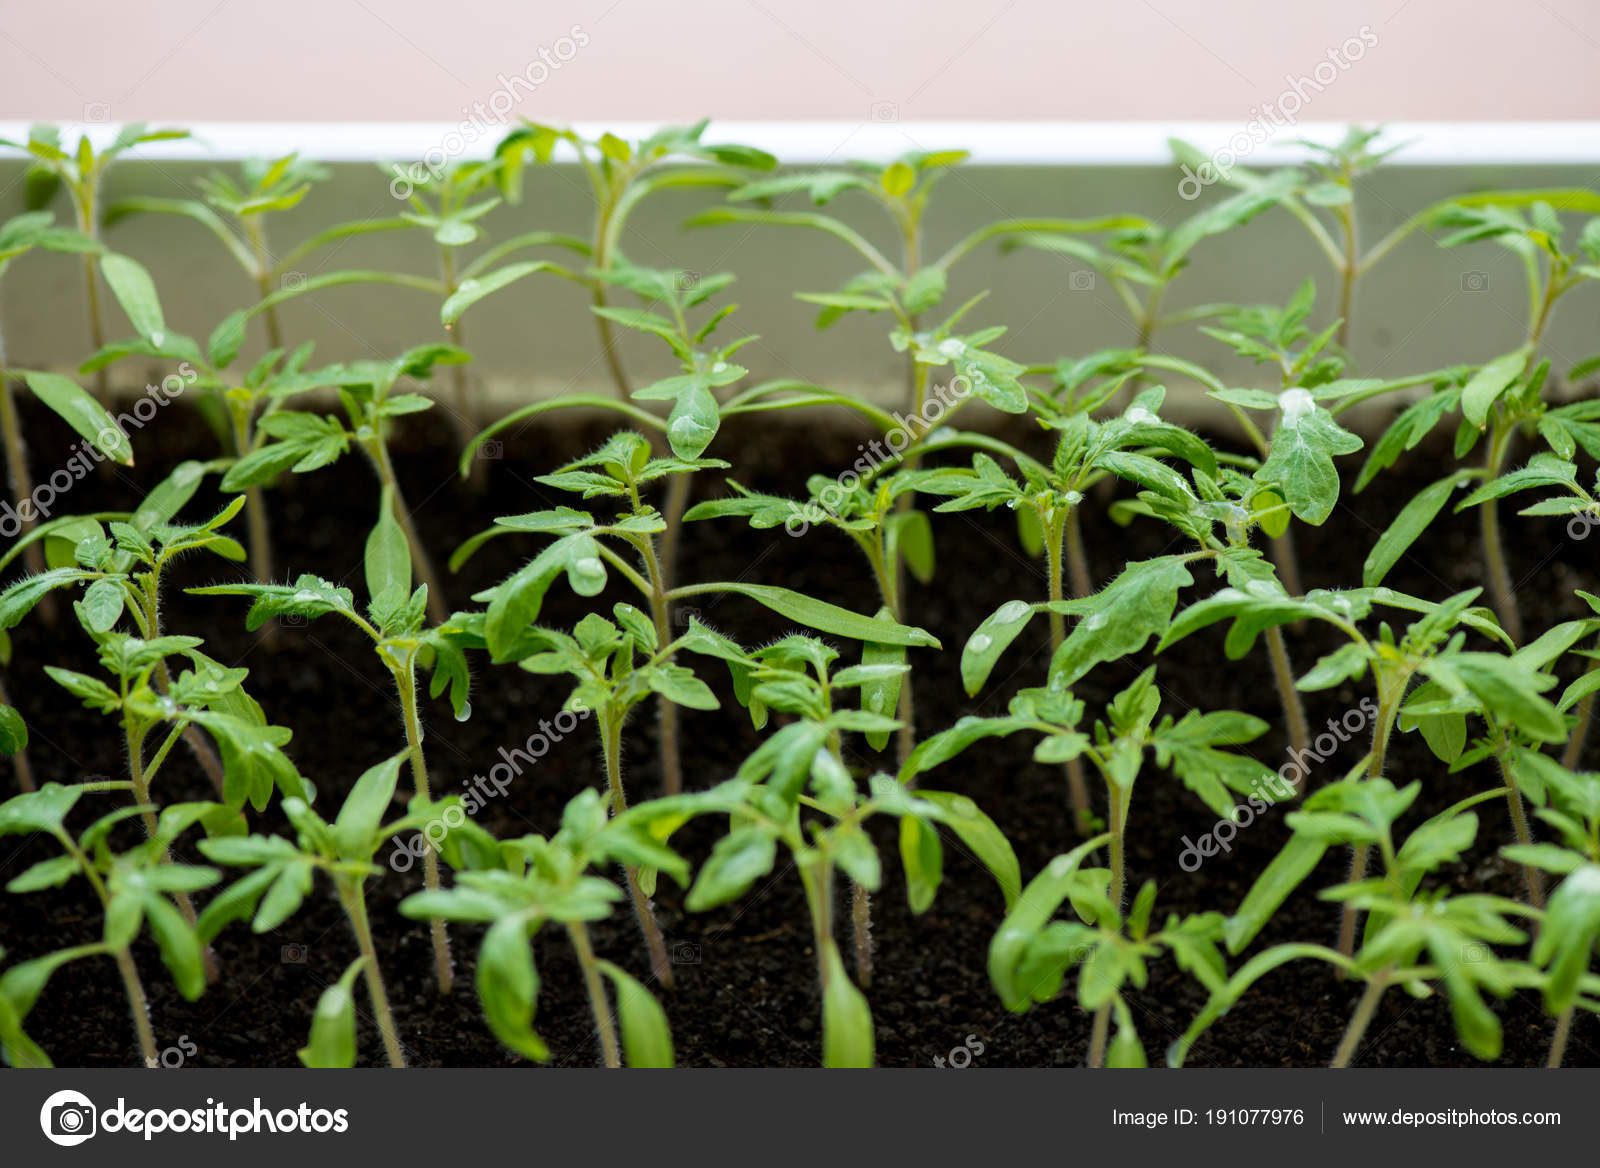 tomato seedlings growing in a greenhouse selective focus copy